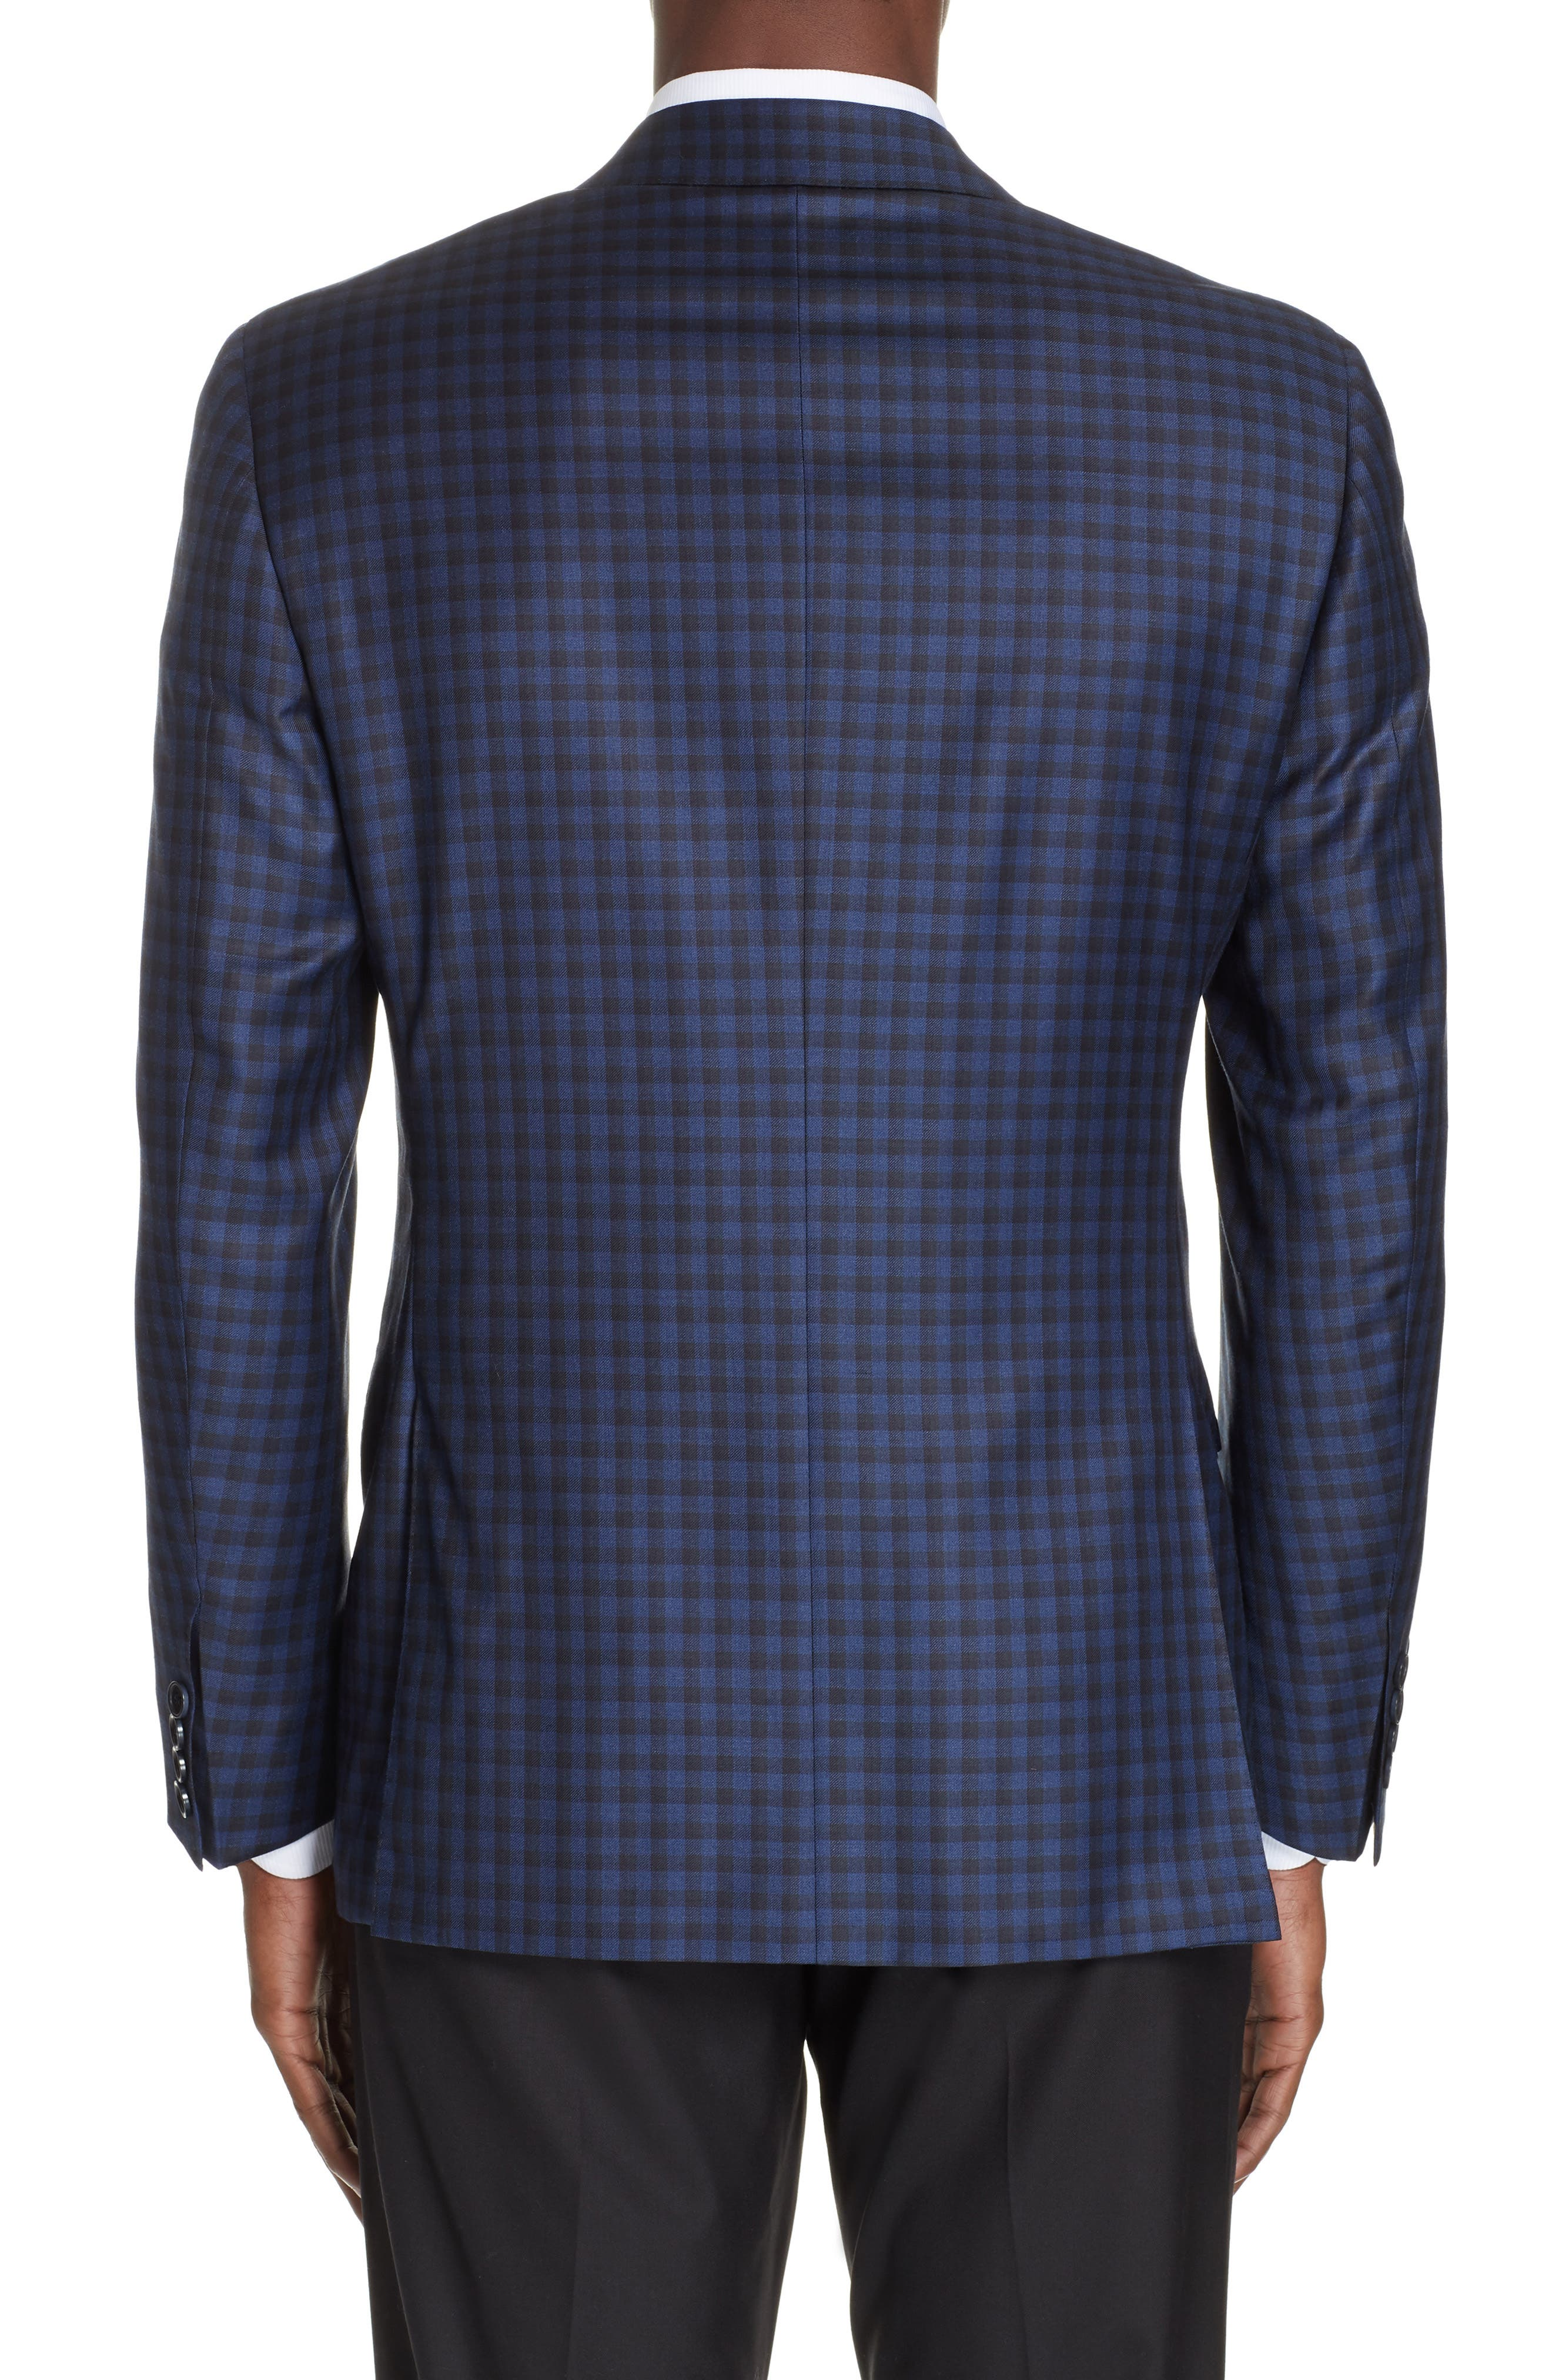 CANALI, Classic Fit Check Wool Sport Coat, Alternate thumbnail 2, color, BLUE